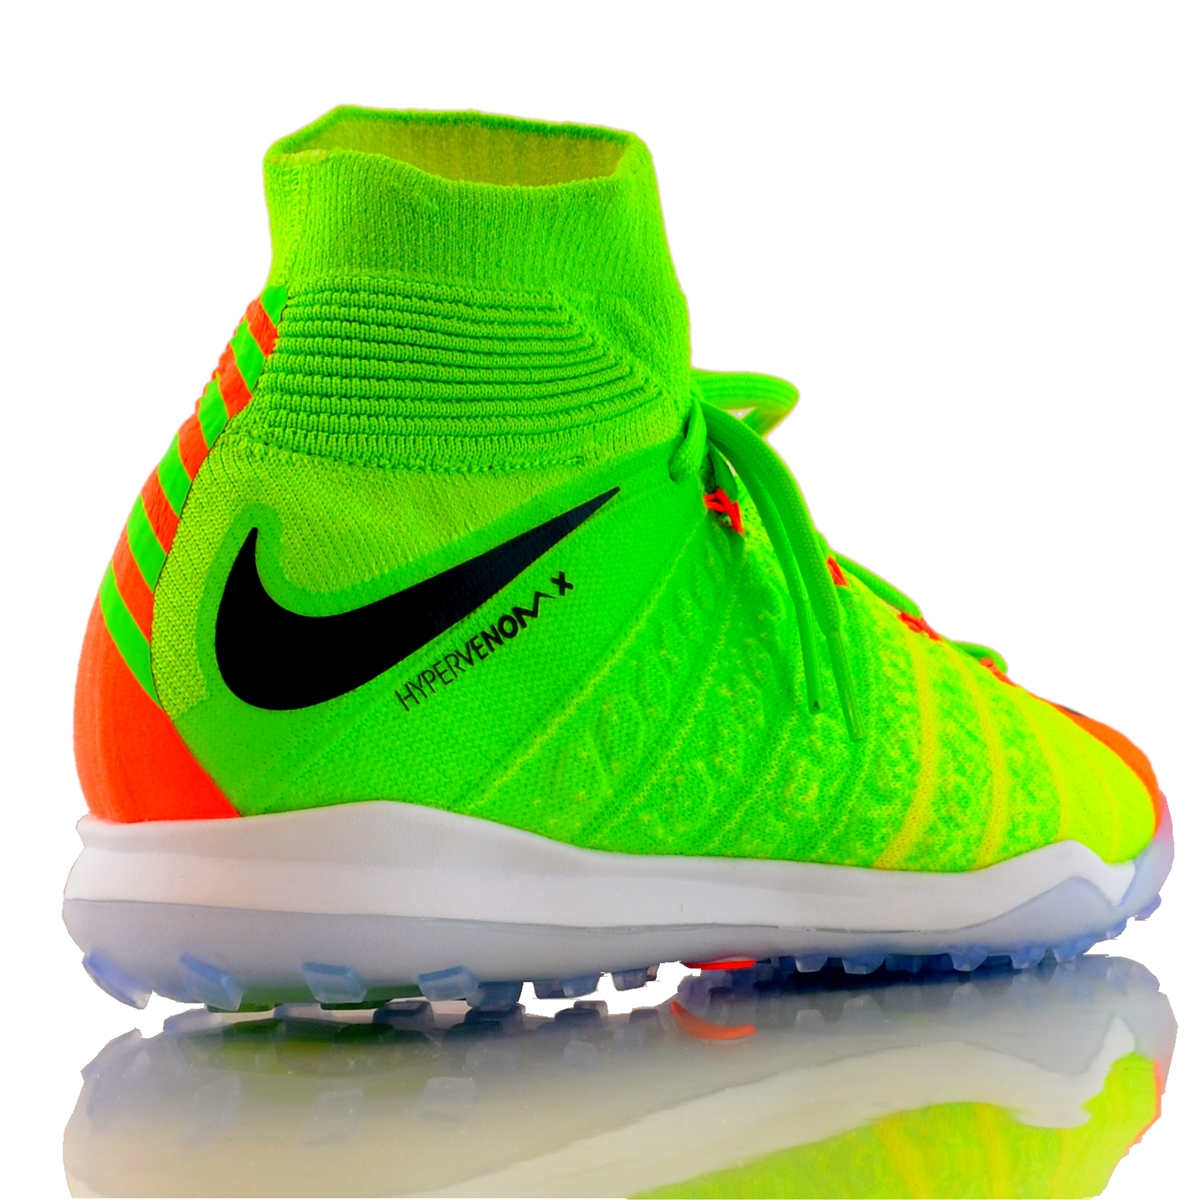 Nike HypervenomX Proximo II DF TF Turf Soccer Shoes (Electric Green ... 2ef27582a